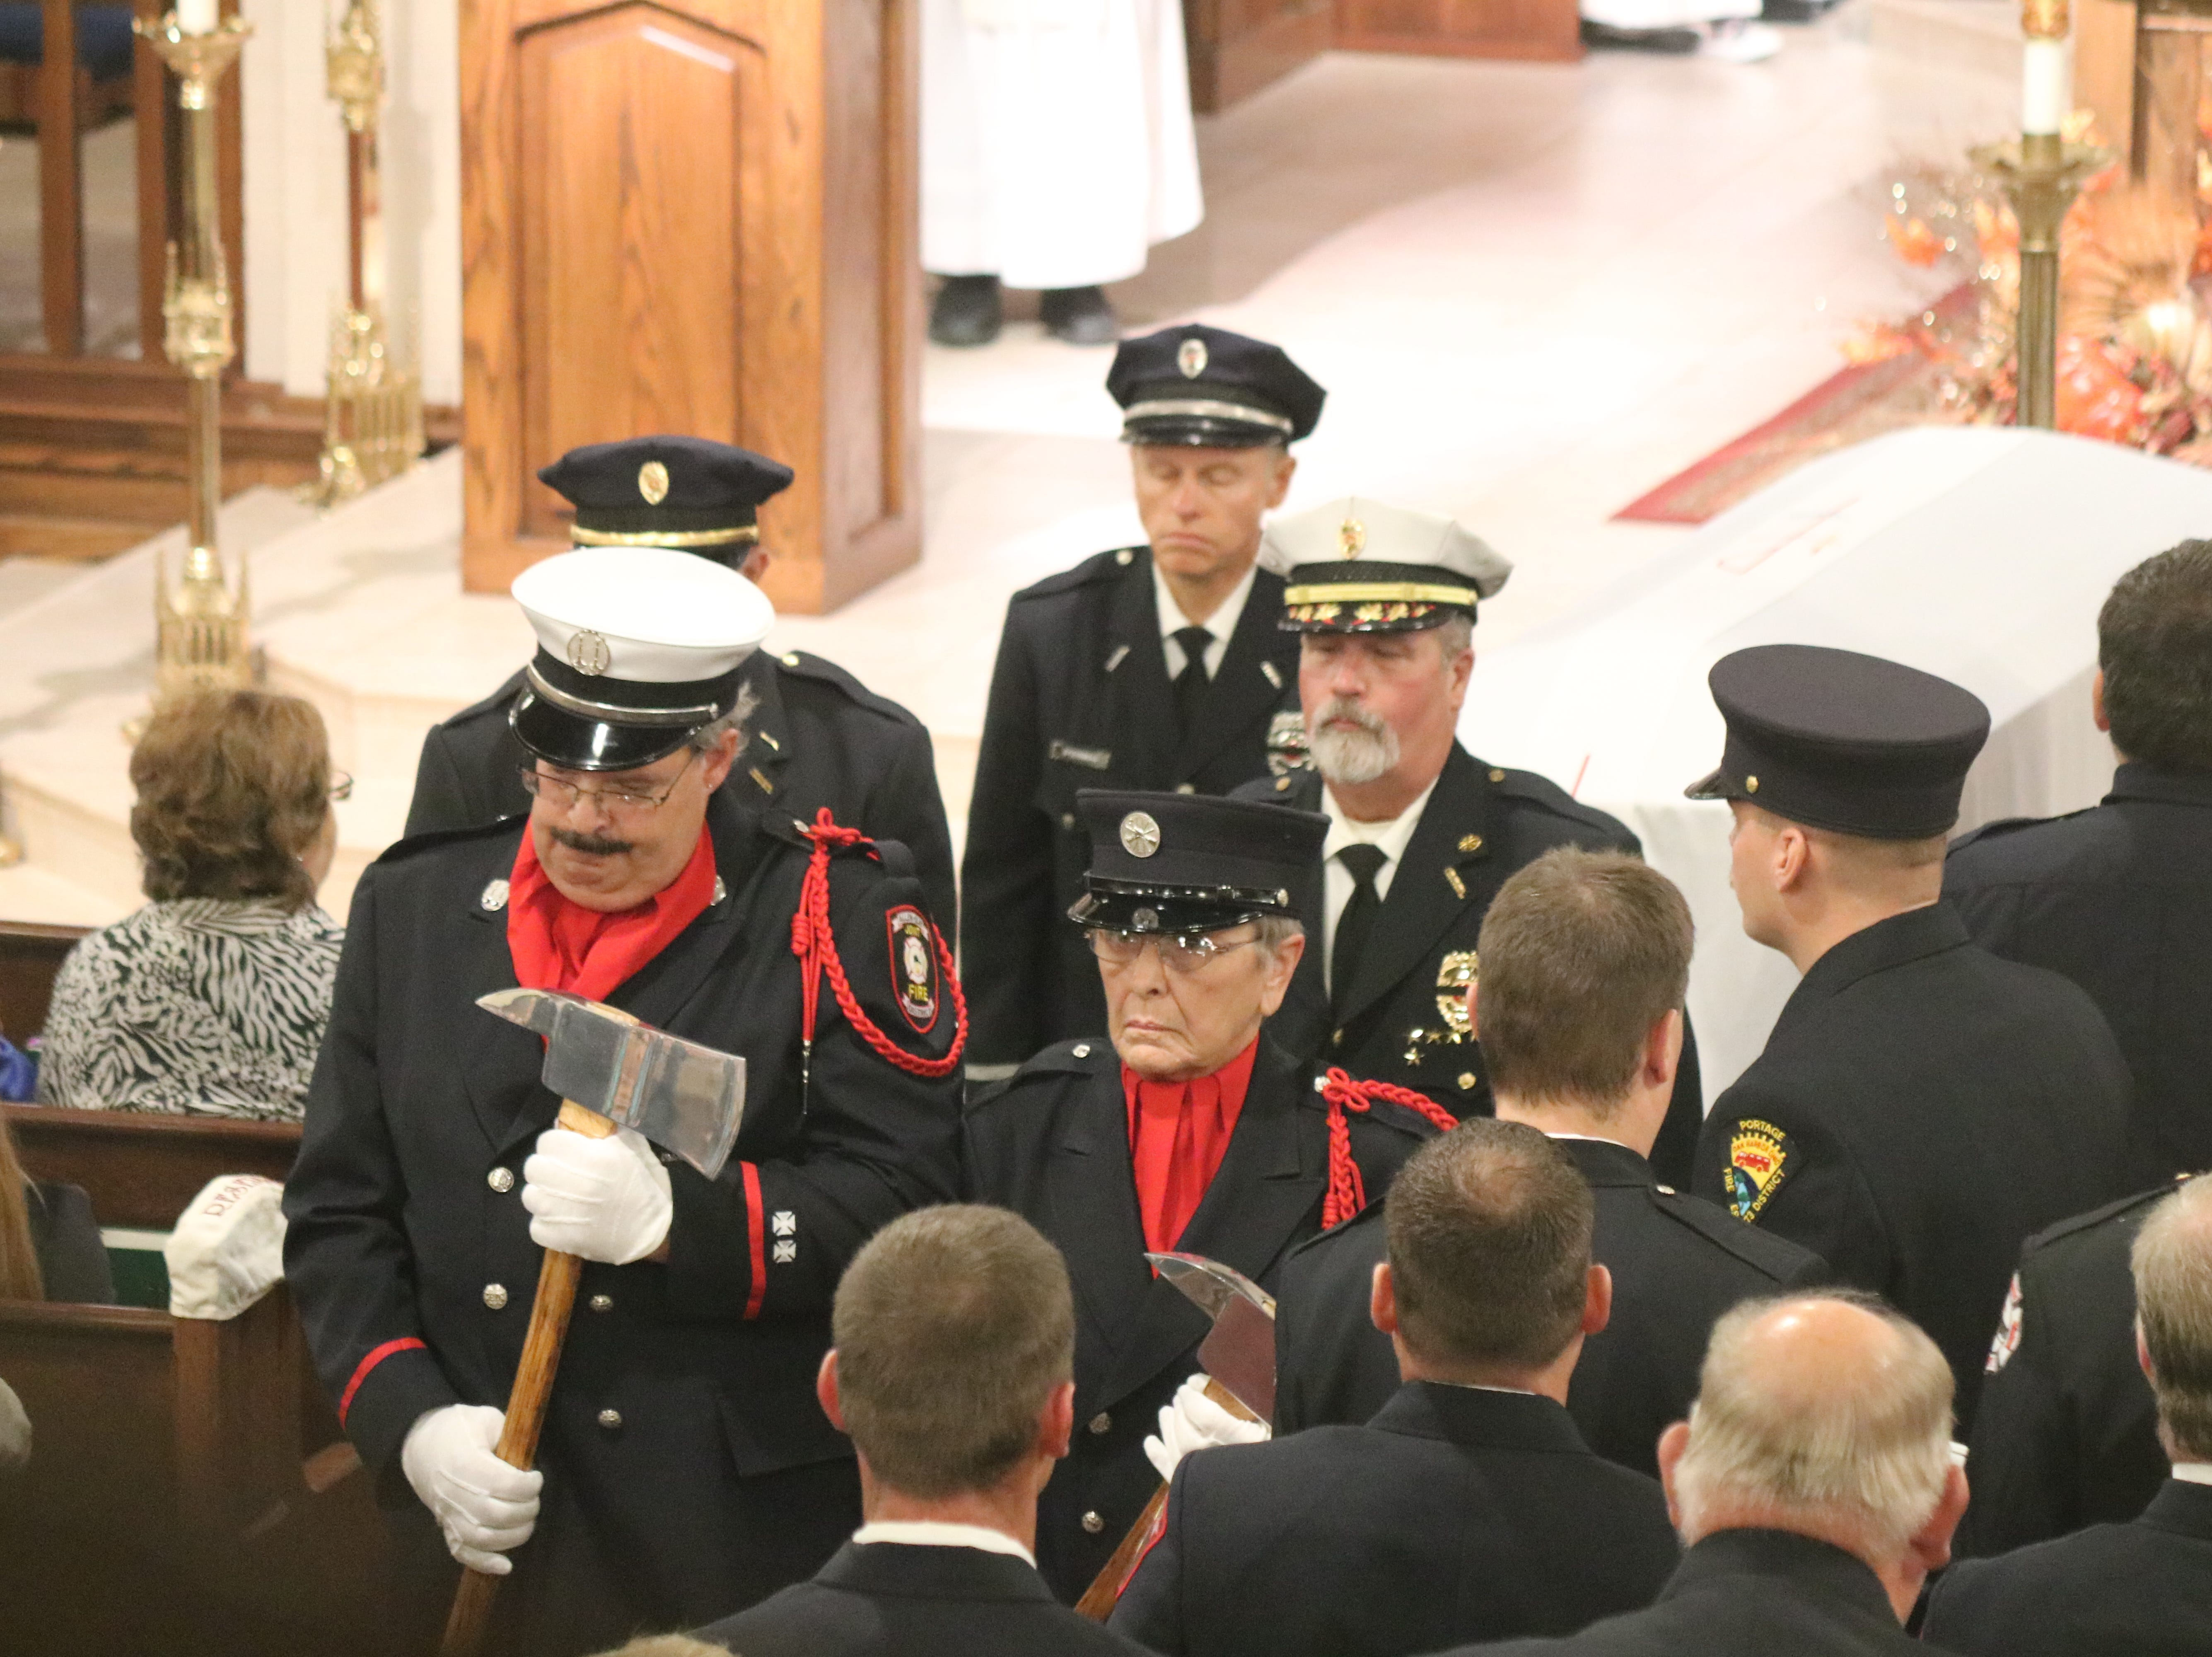 Family, friends and fellow first responders mourned the loss of one of their own as they gathered in Oak Harbor on Saturday for the funeral of Carroll Township firefighter Daniel Lucius.